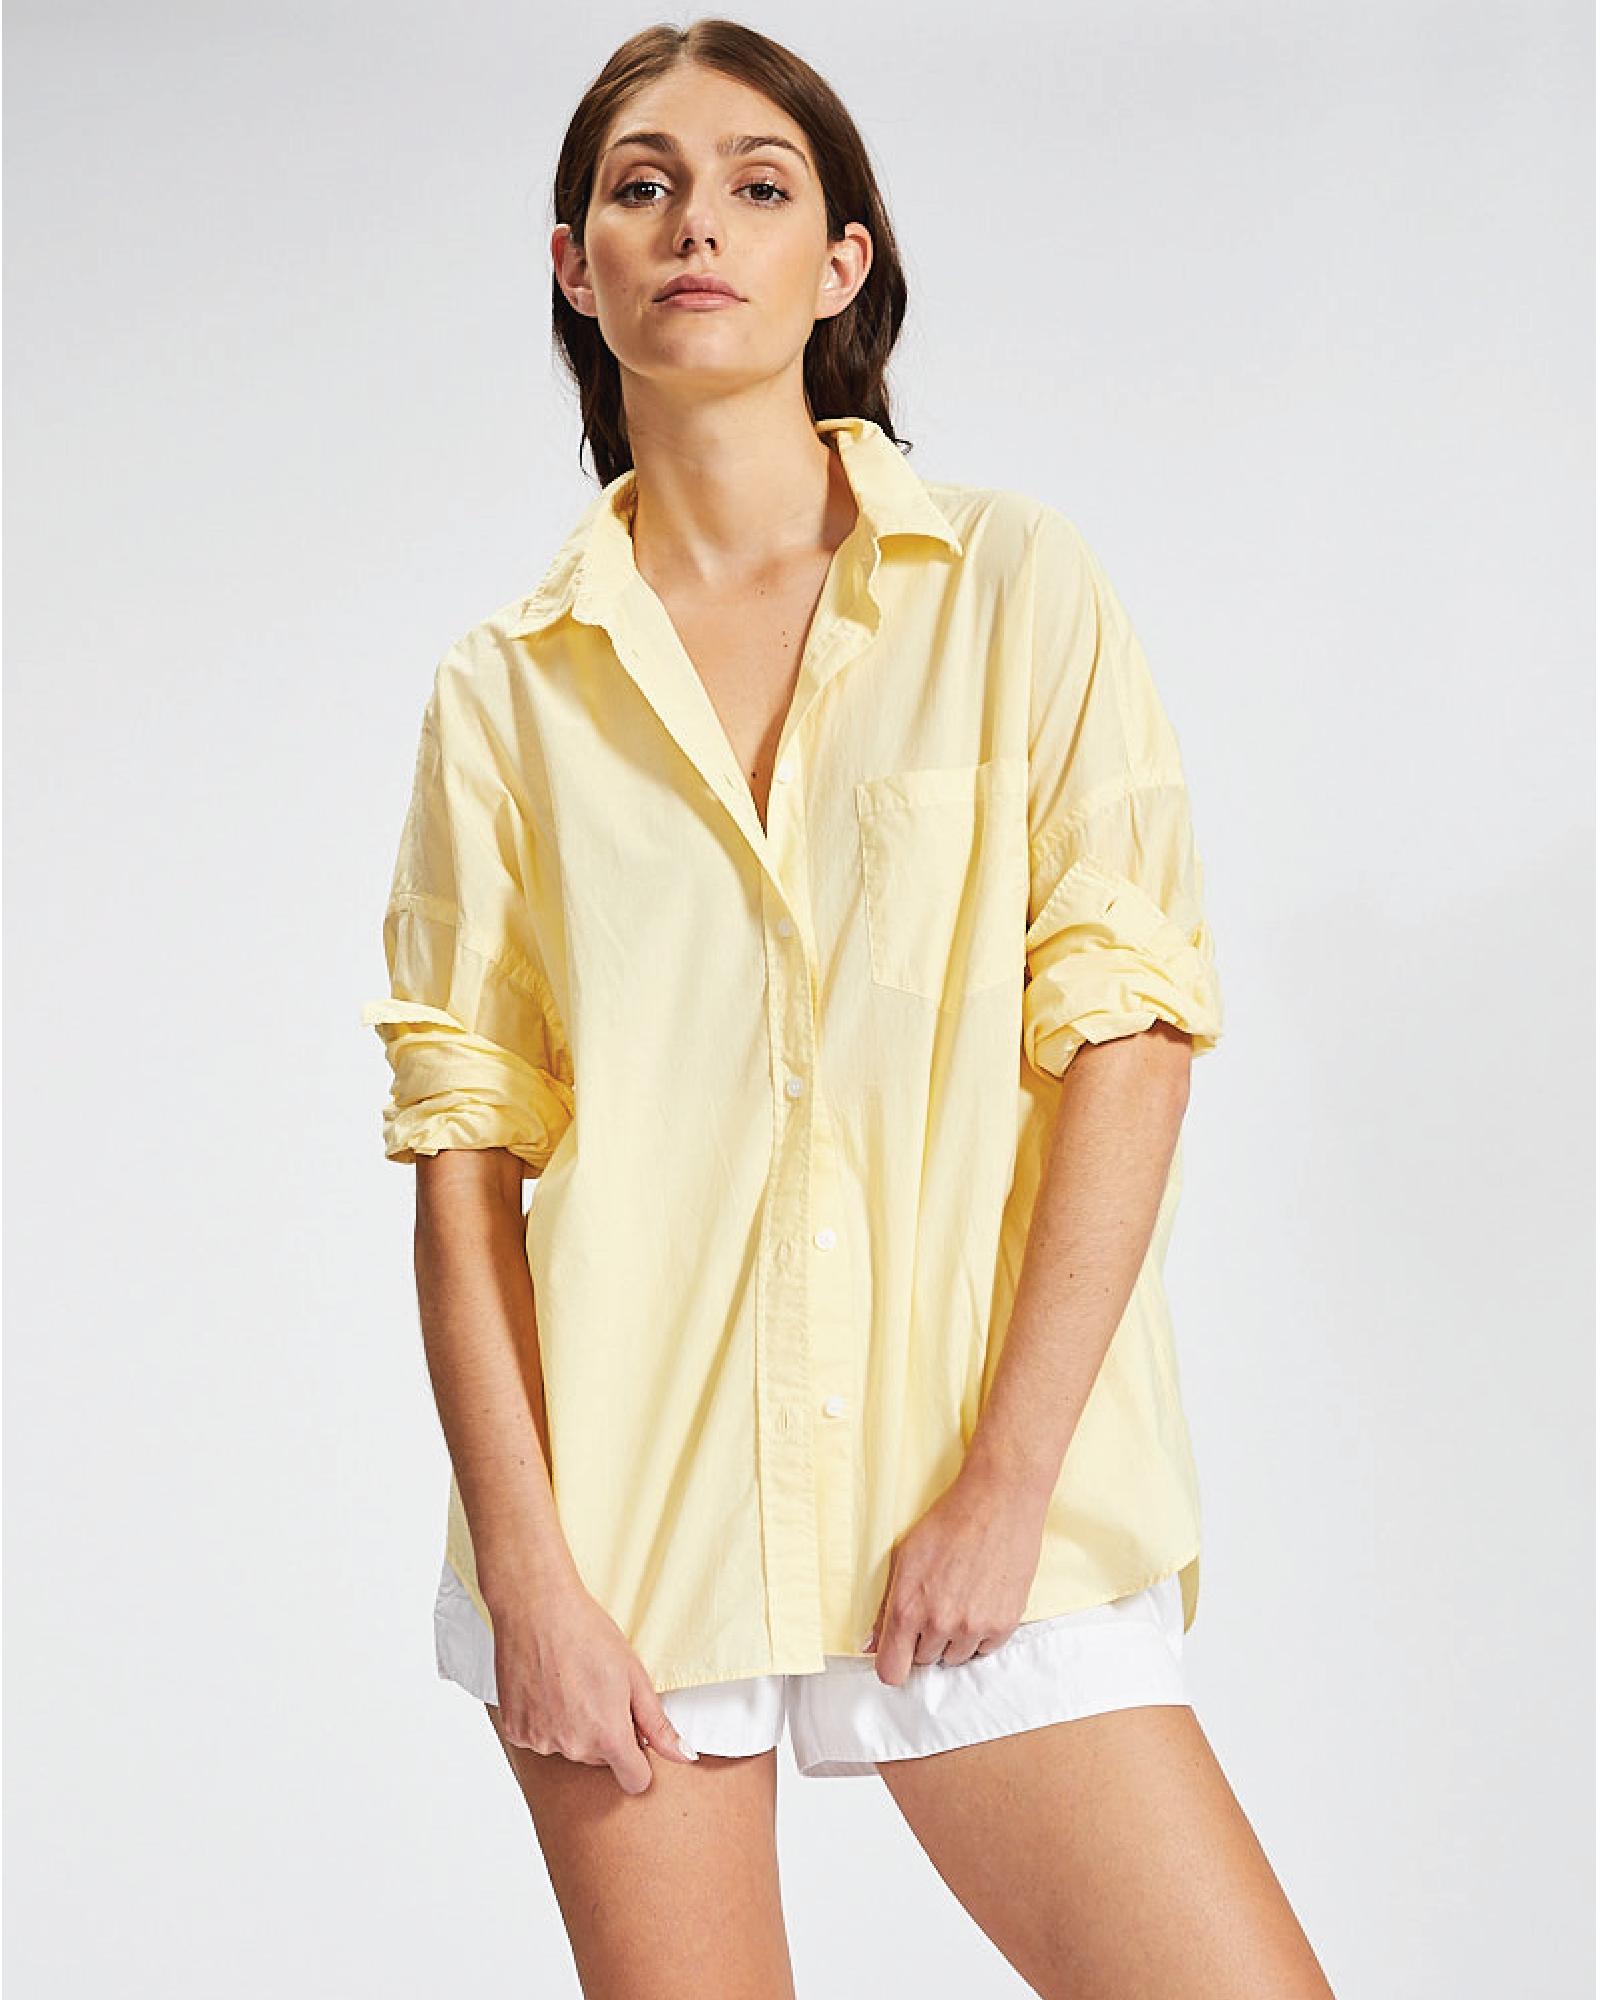 LMND, The Chiara Shirt - Limoncello, $115